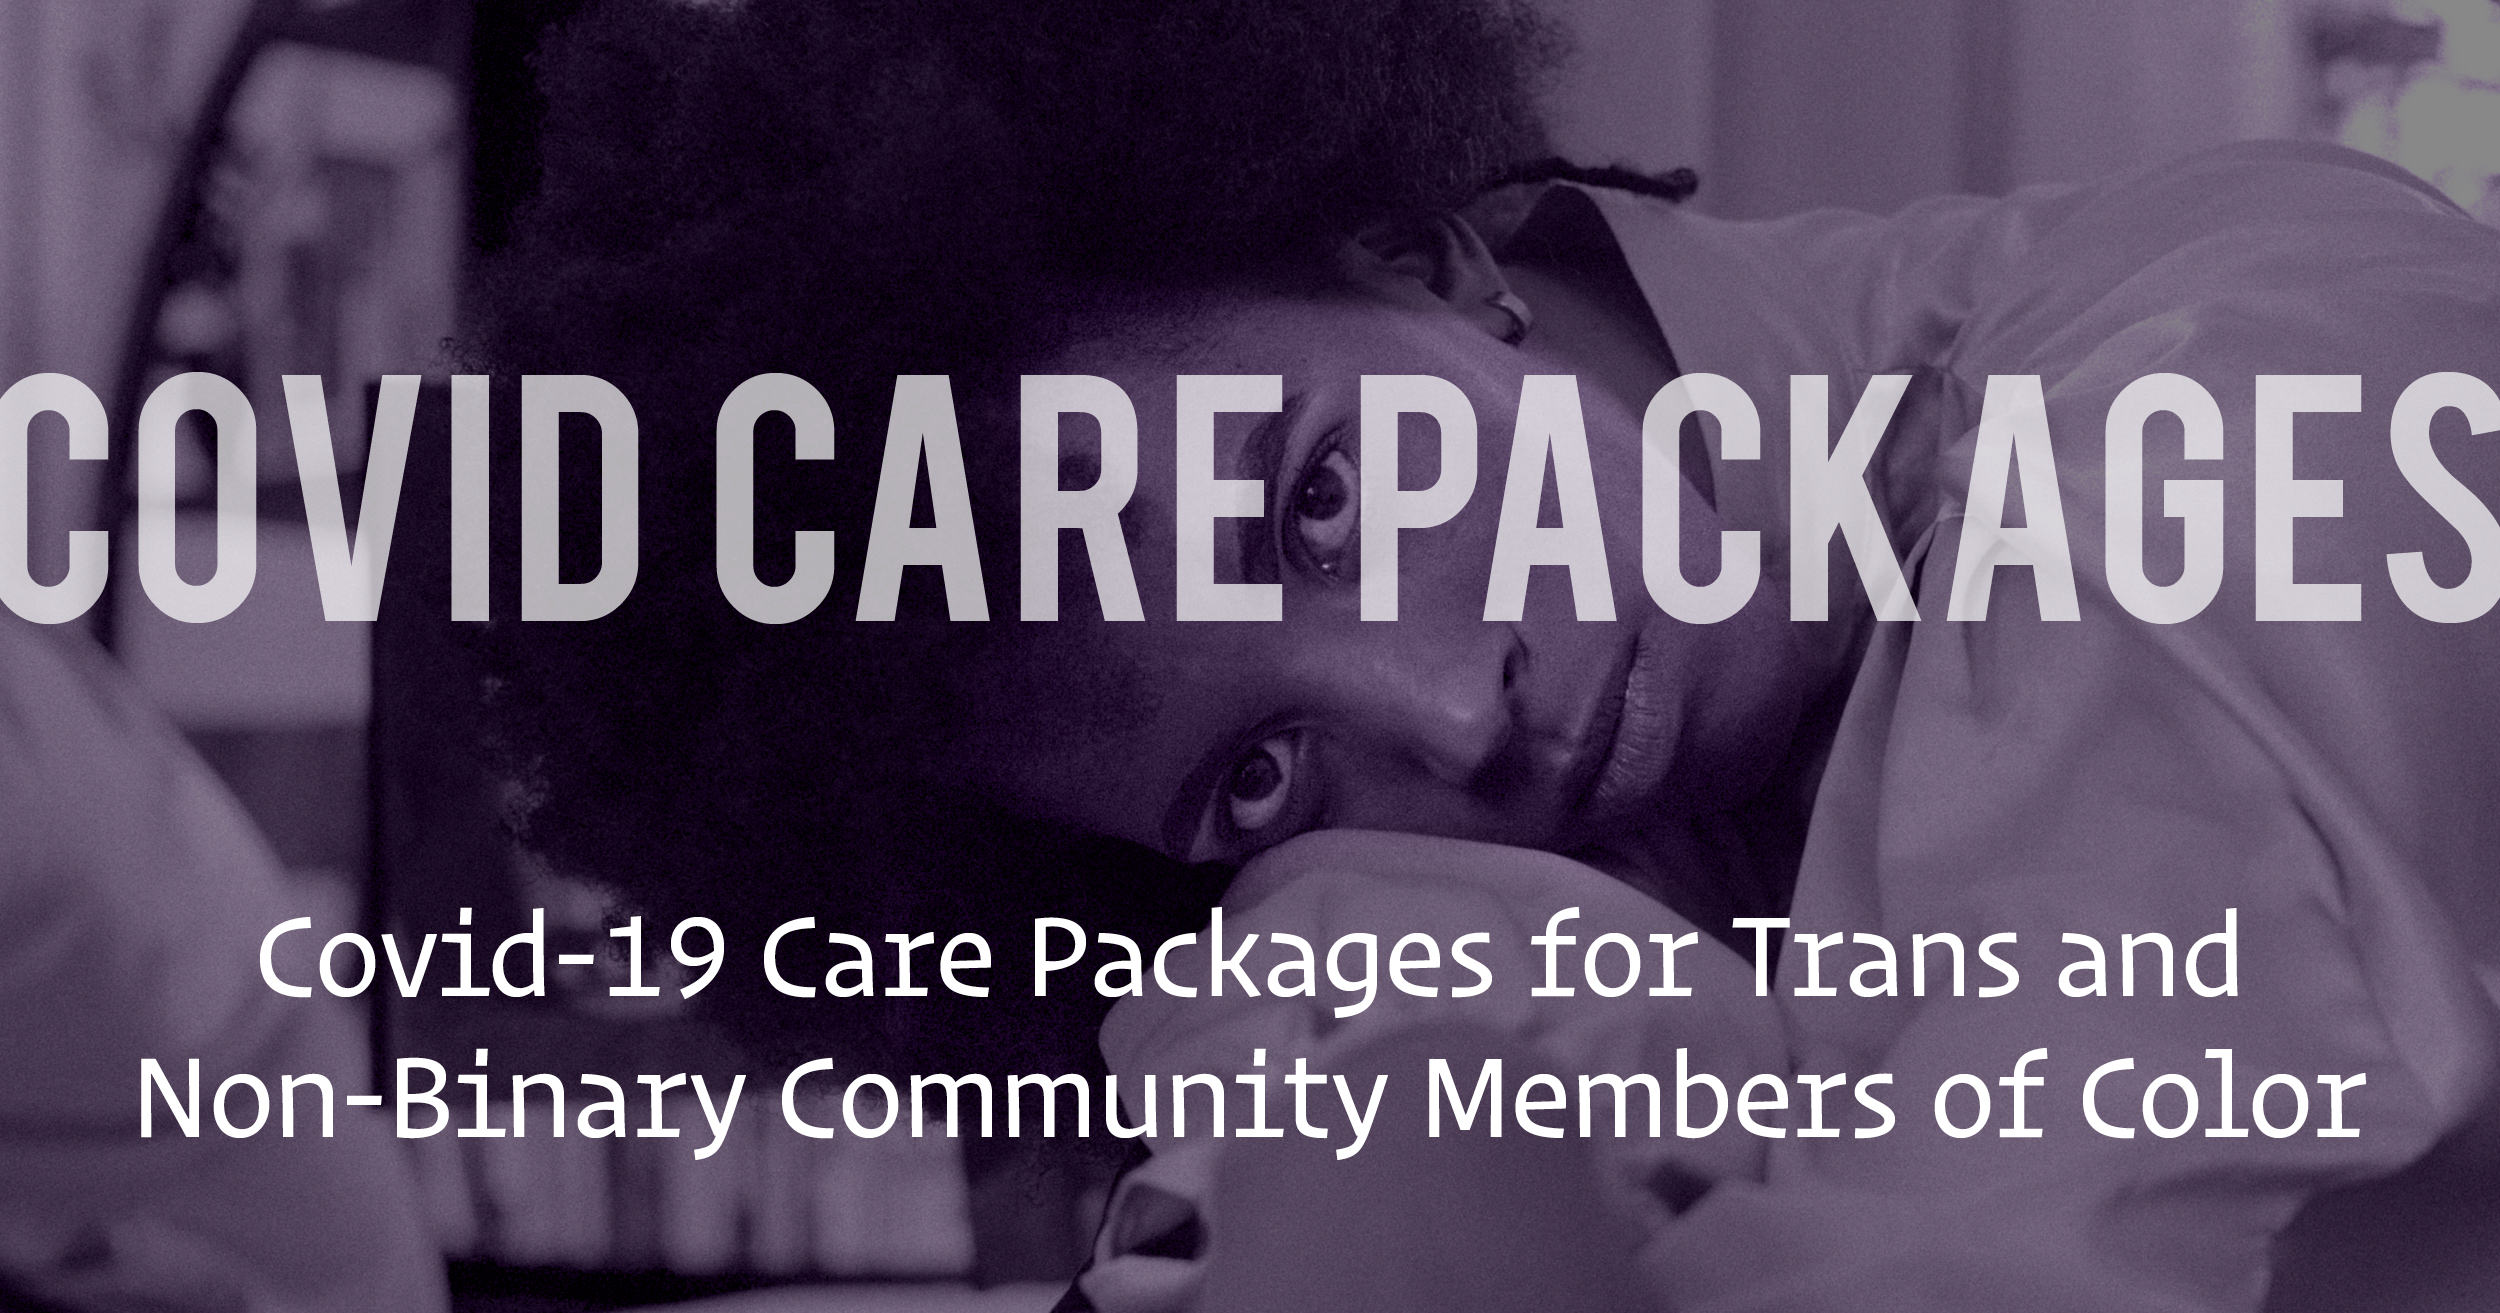 Covid-19 Care Packages for Trans and Non-Binary Community Members of Color